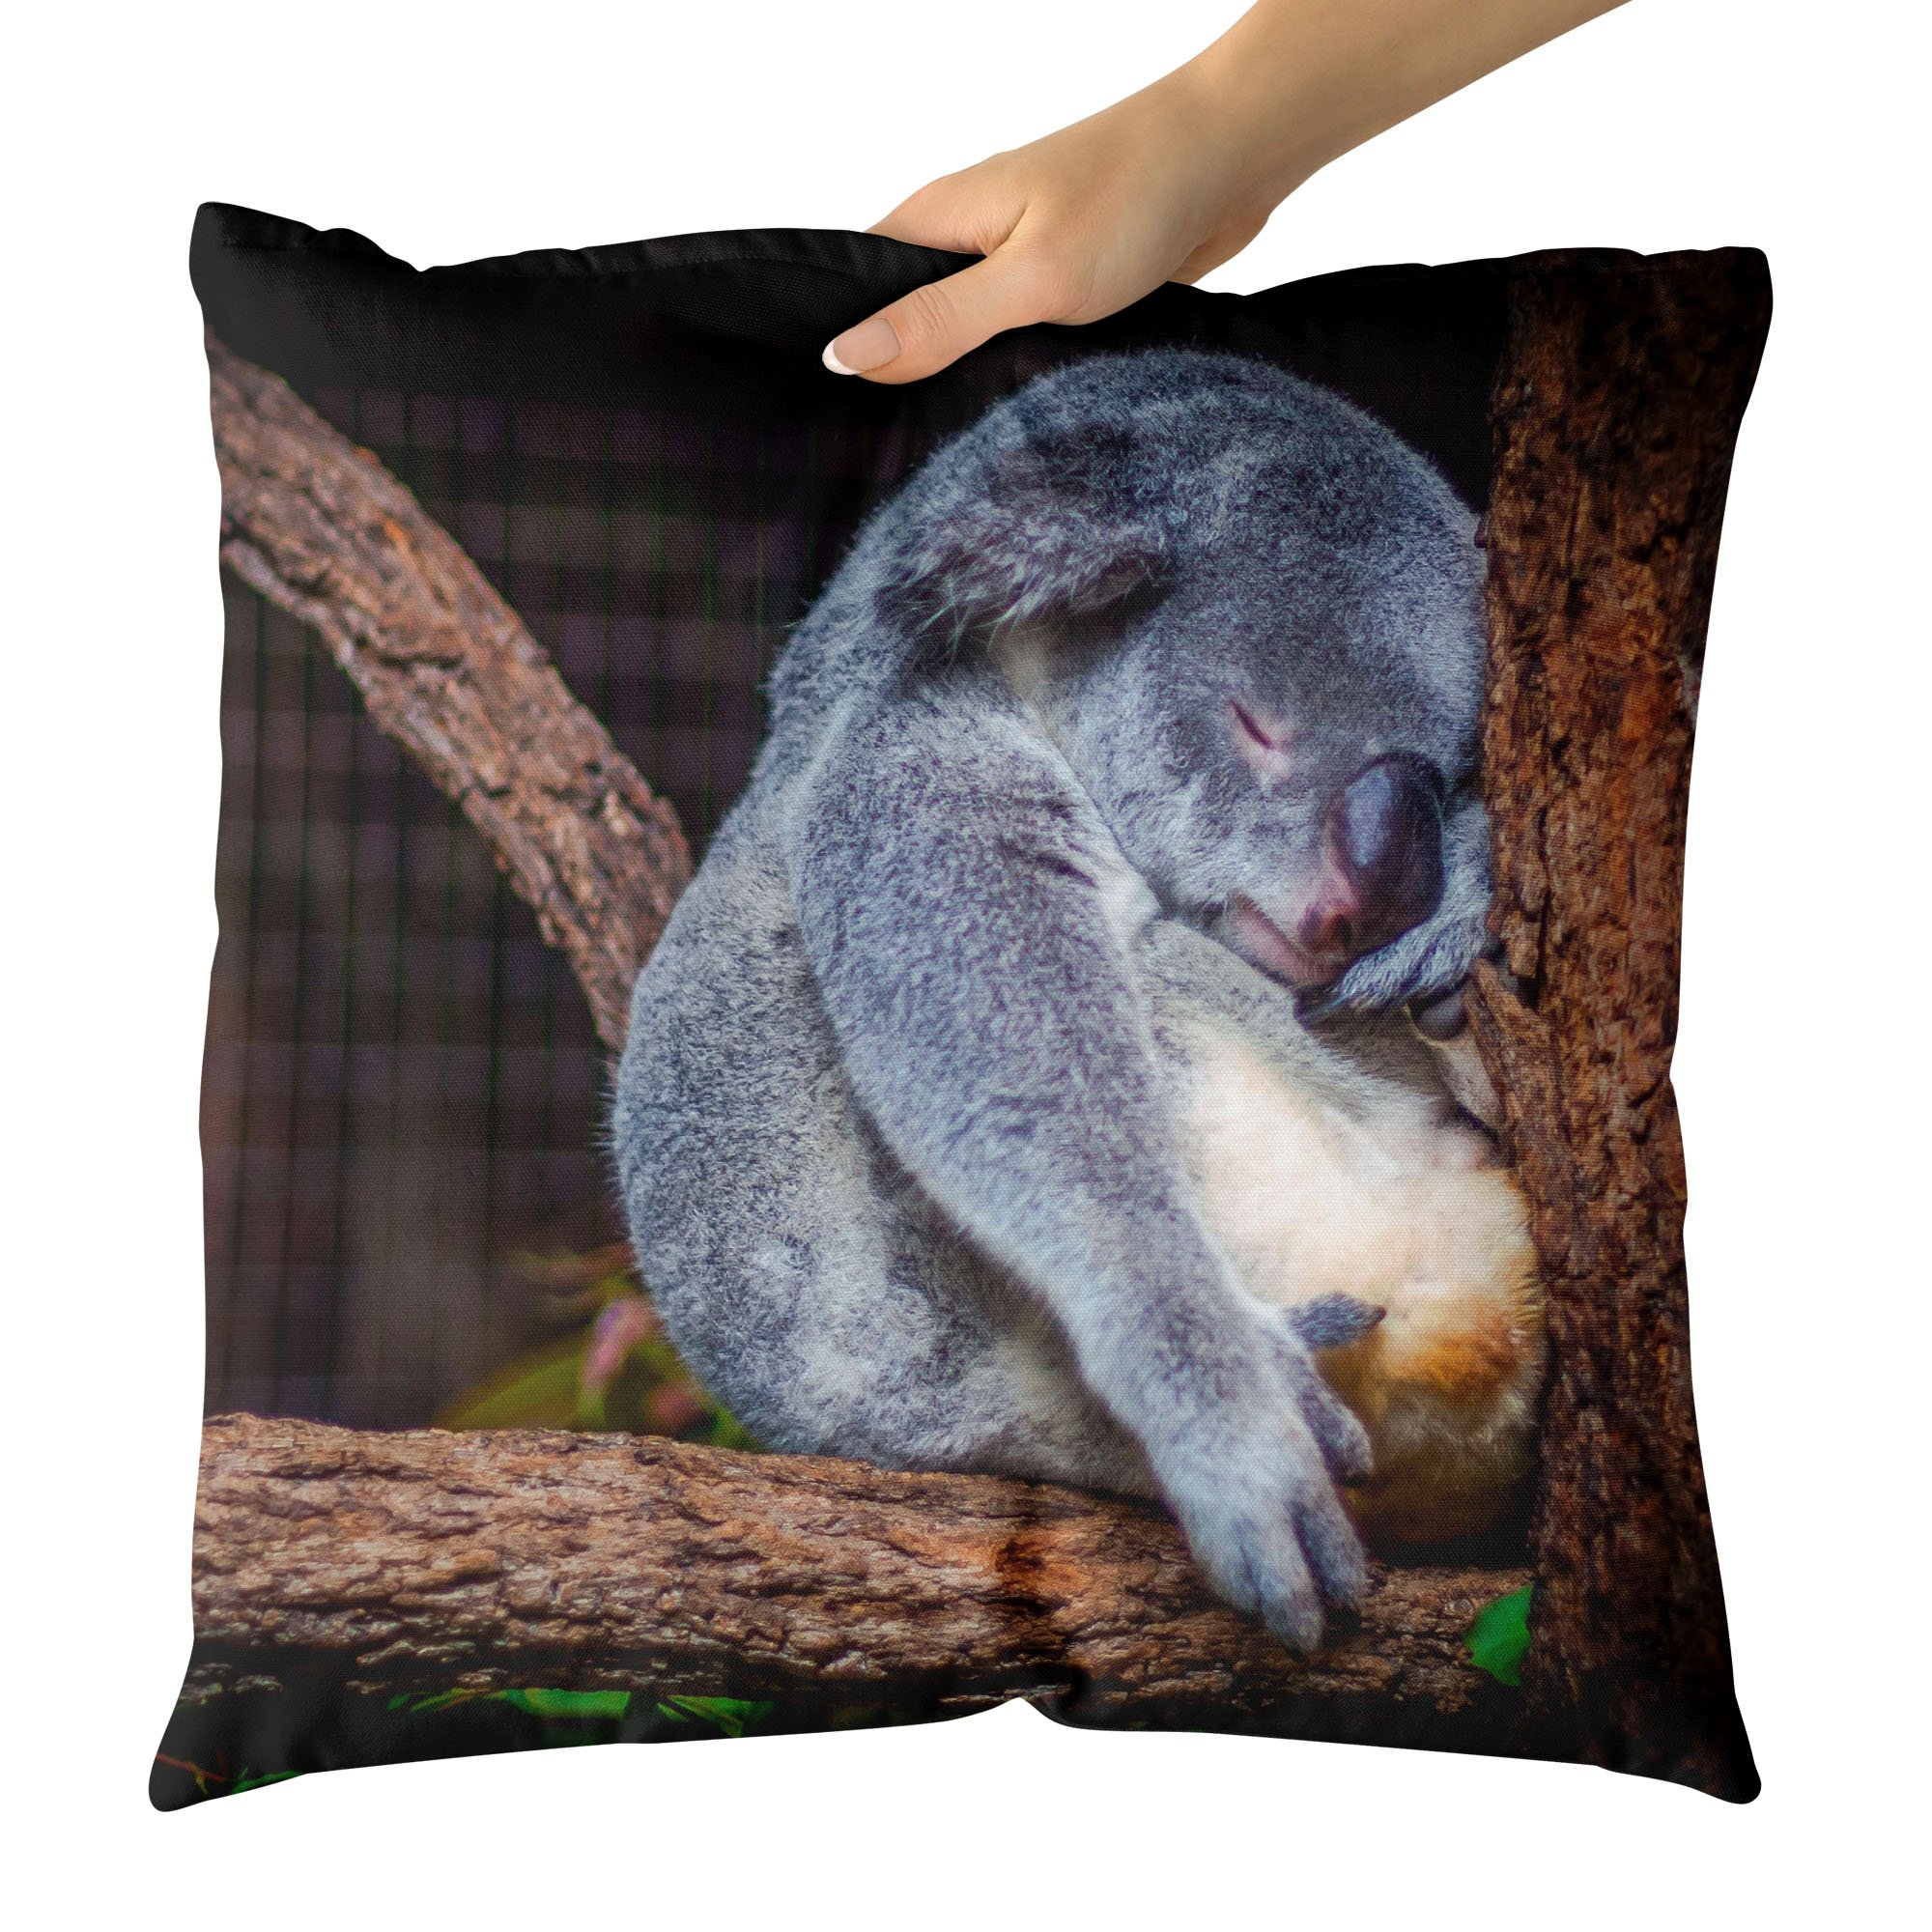 Westlake Art - Everyday Koala - Decorative Throw Pillow Cushion - Picture Photography Artwork Home Decor Living Room - 26x26 Inch by Westlake Art